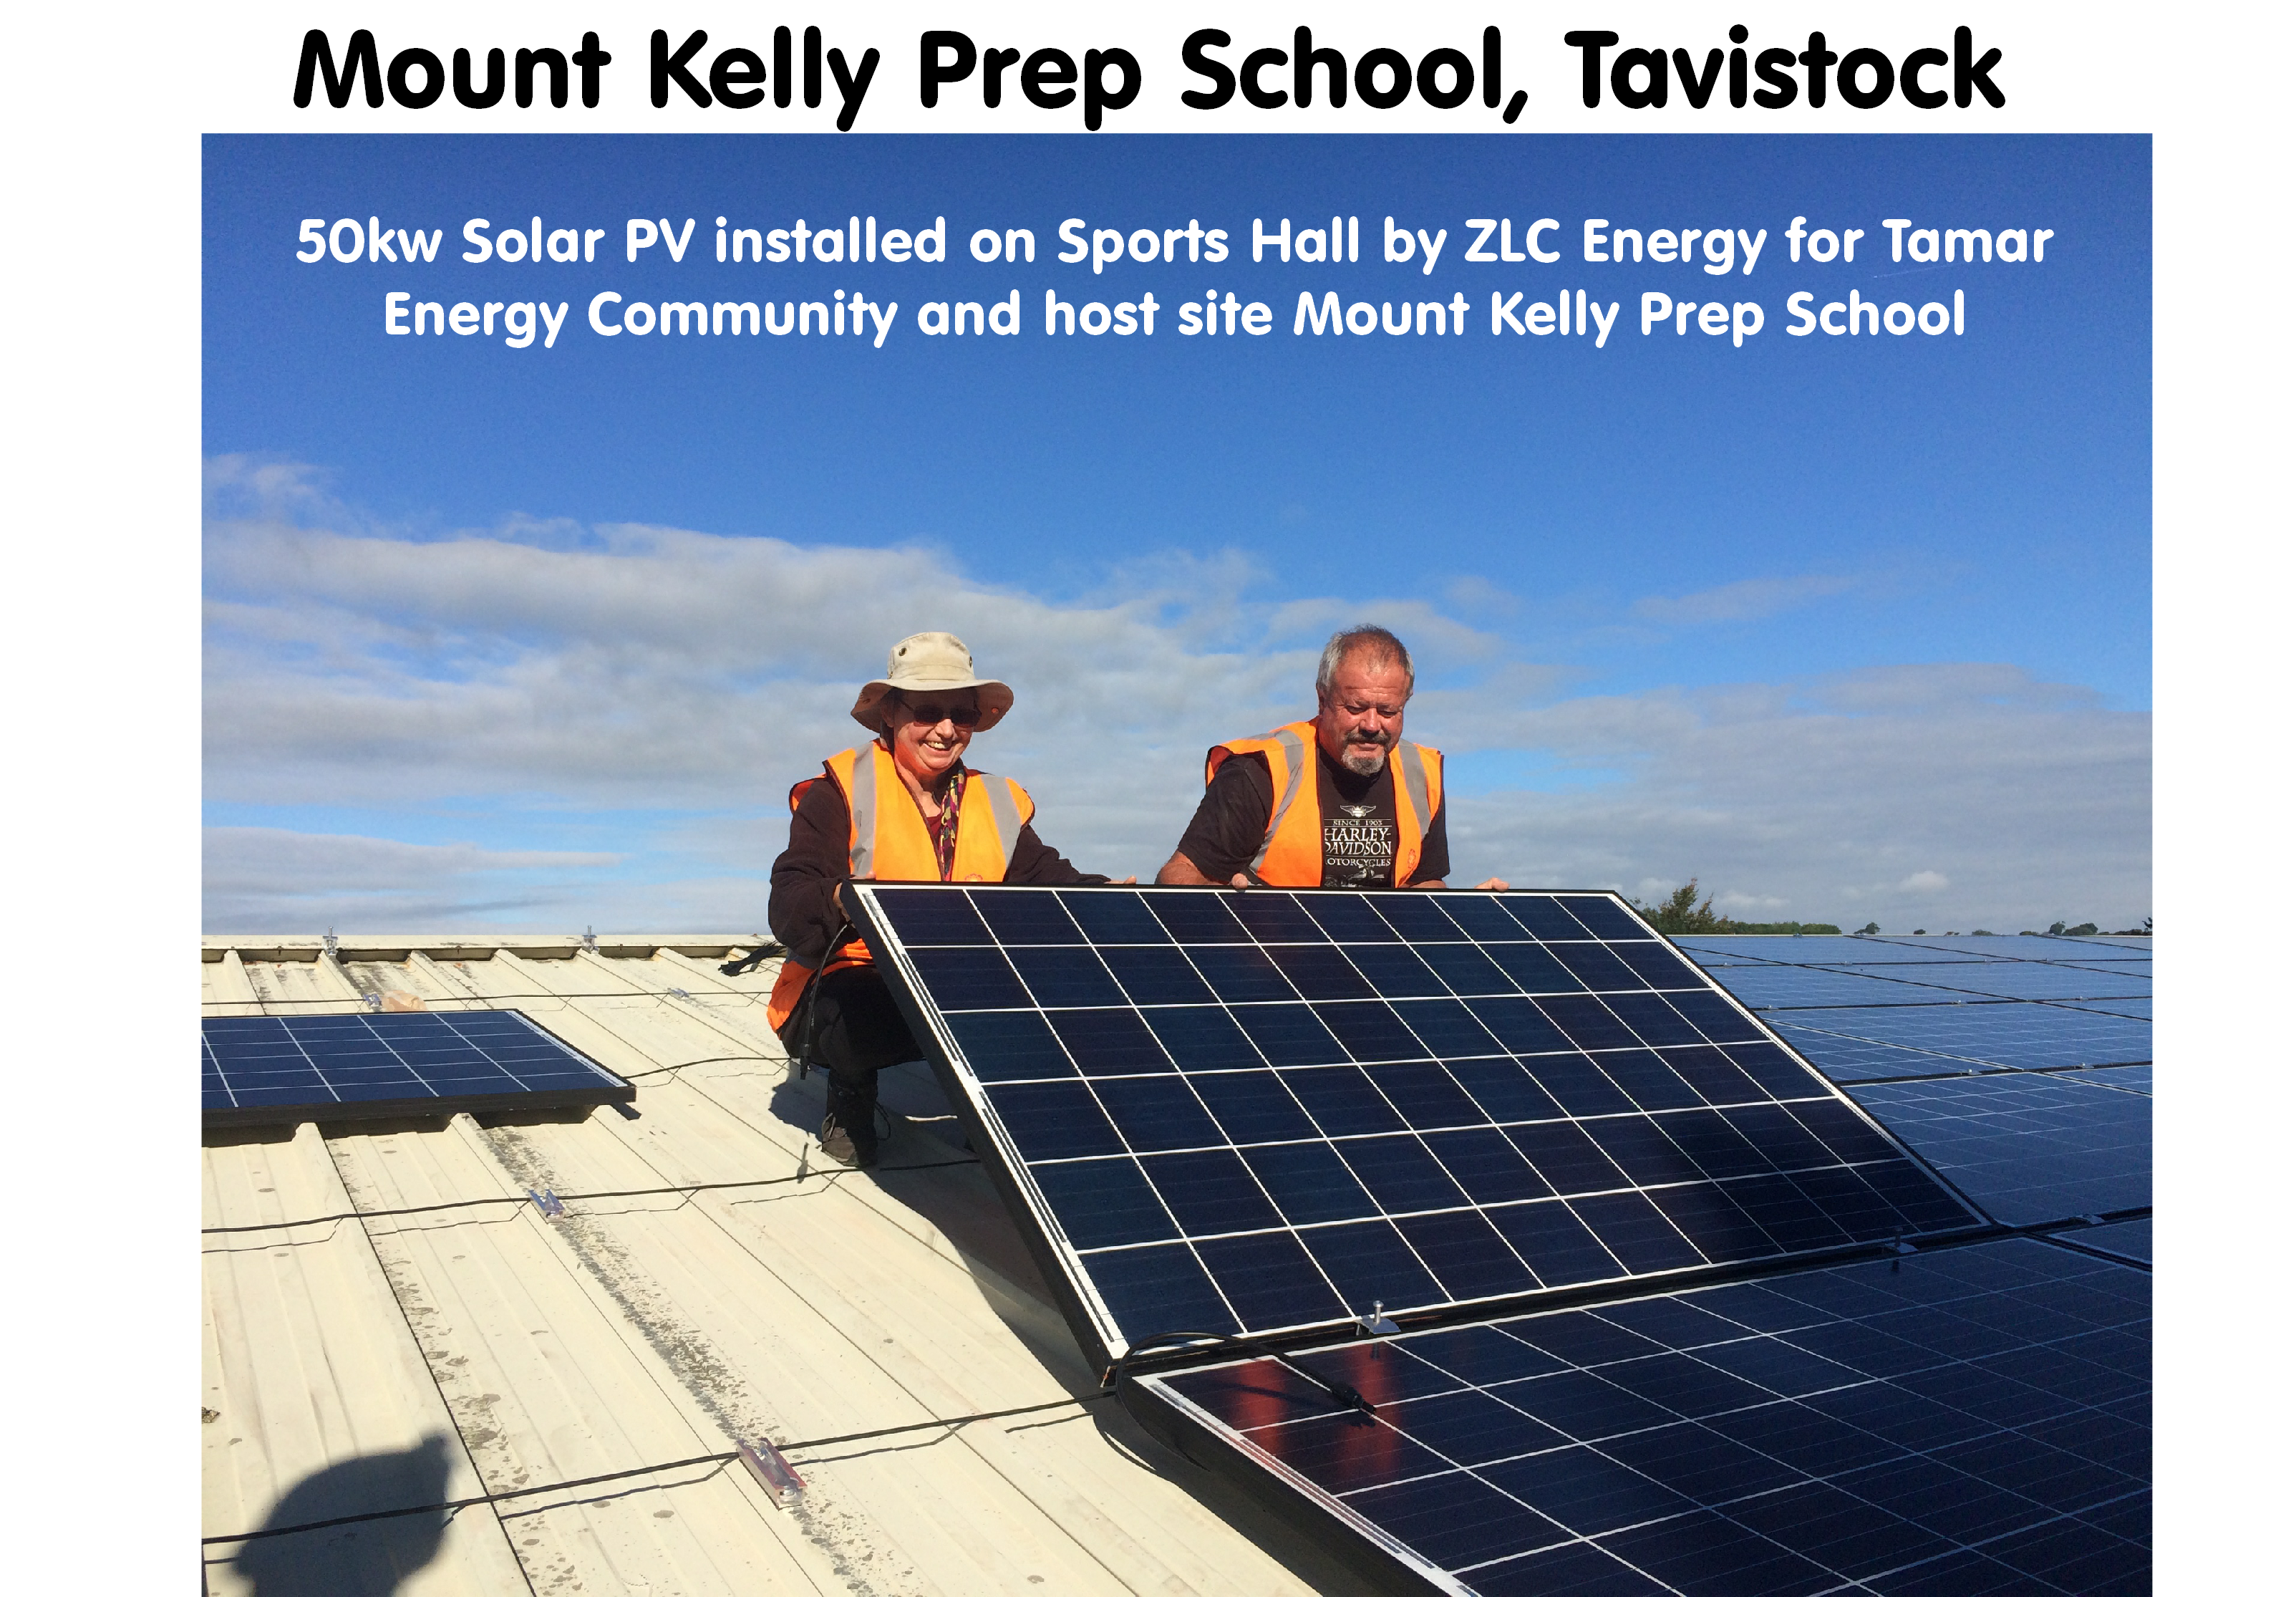 Mount Kelly Prep